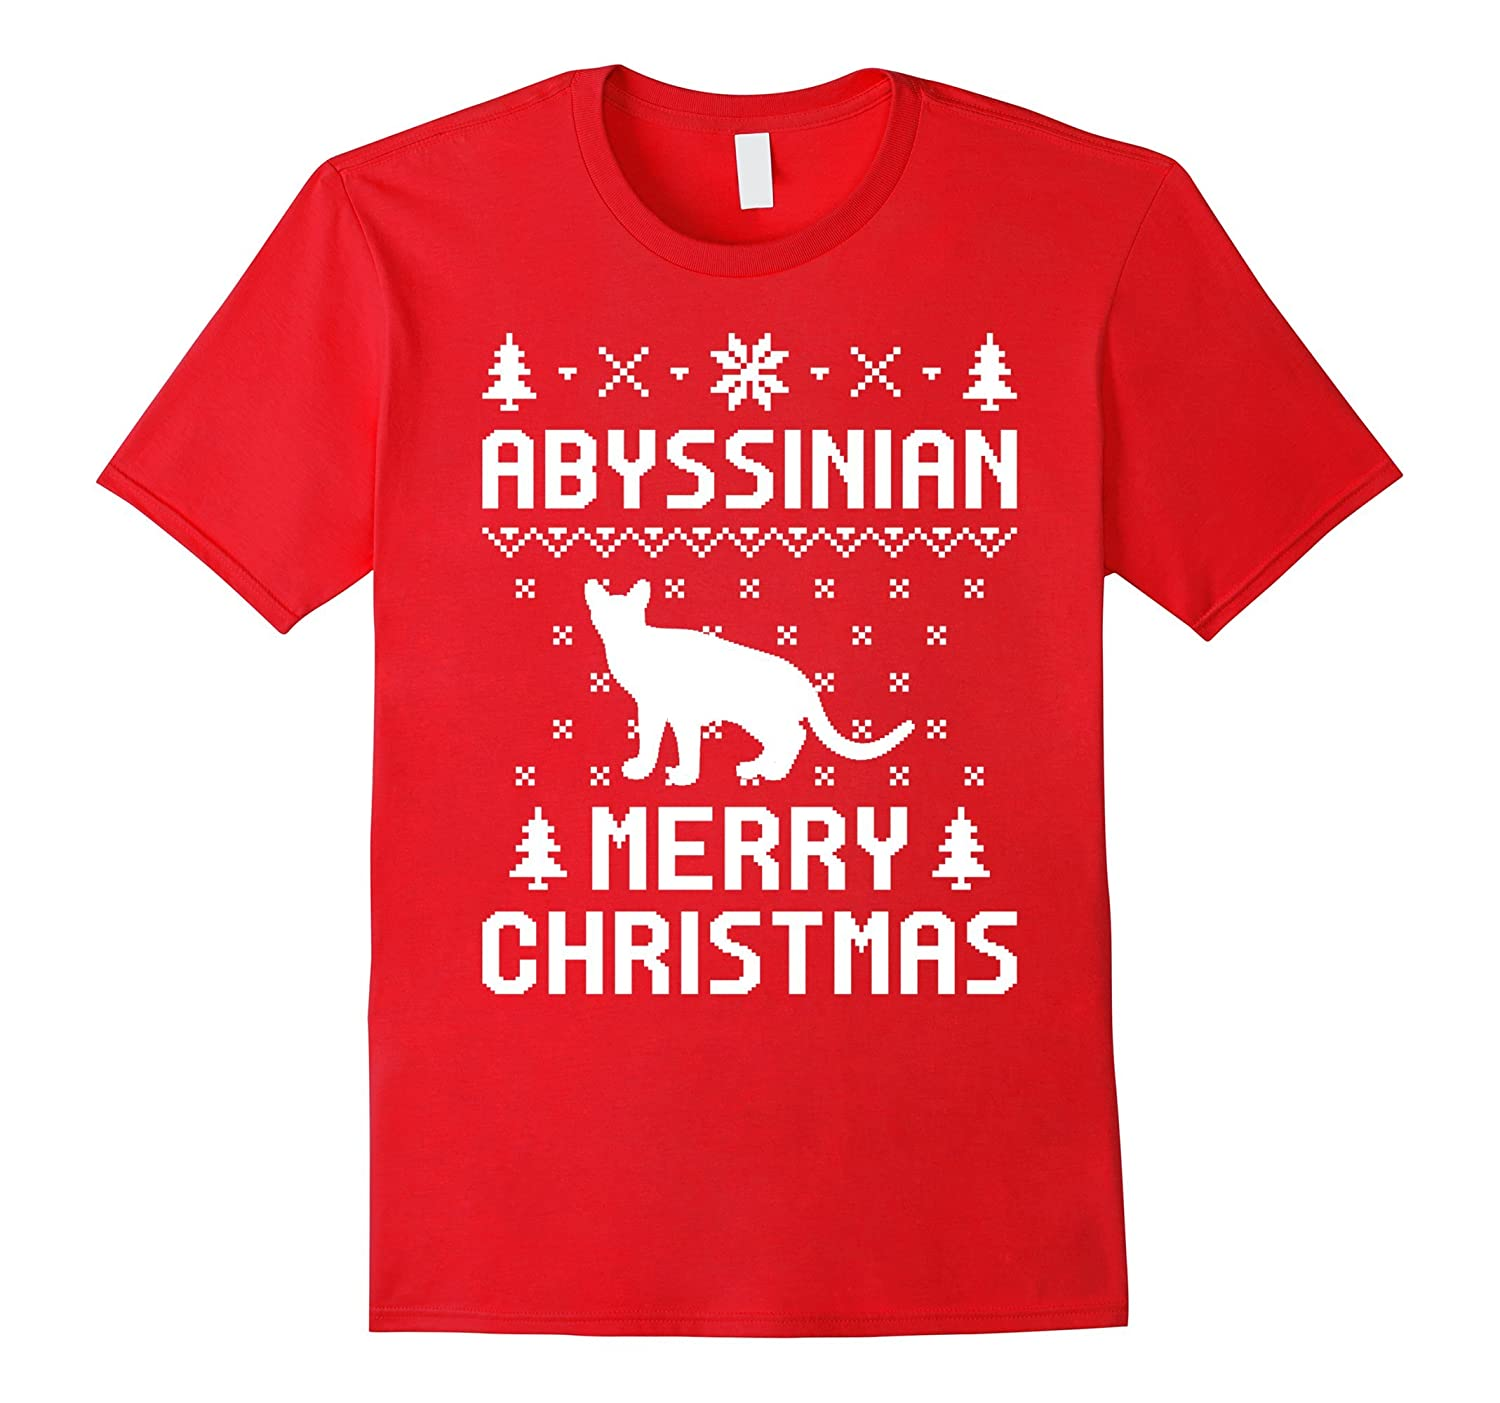 Abyssinian Christmas T-shirt, Ugly Christmas Sweater T-Shirt-AZP